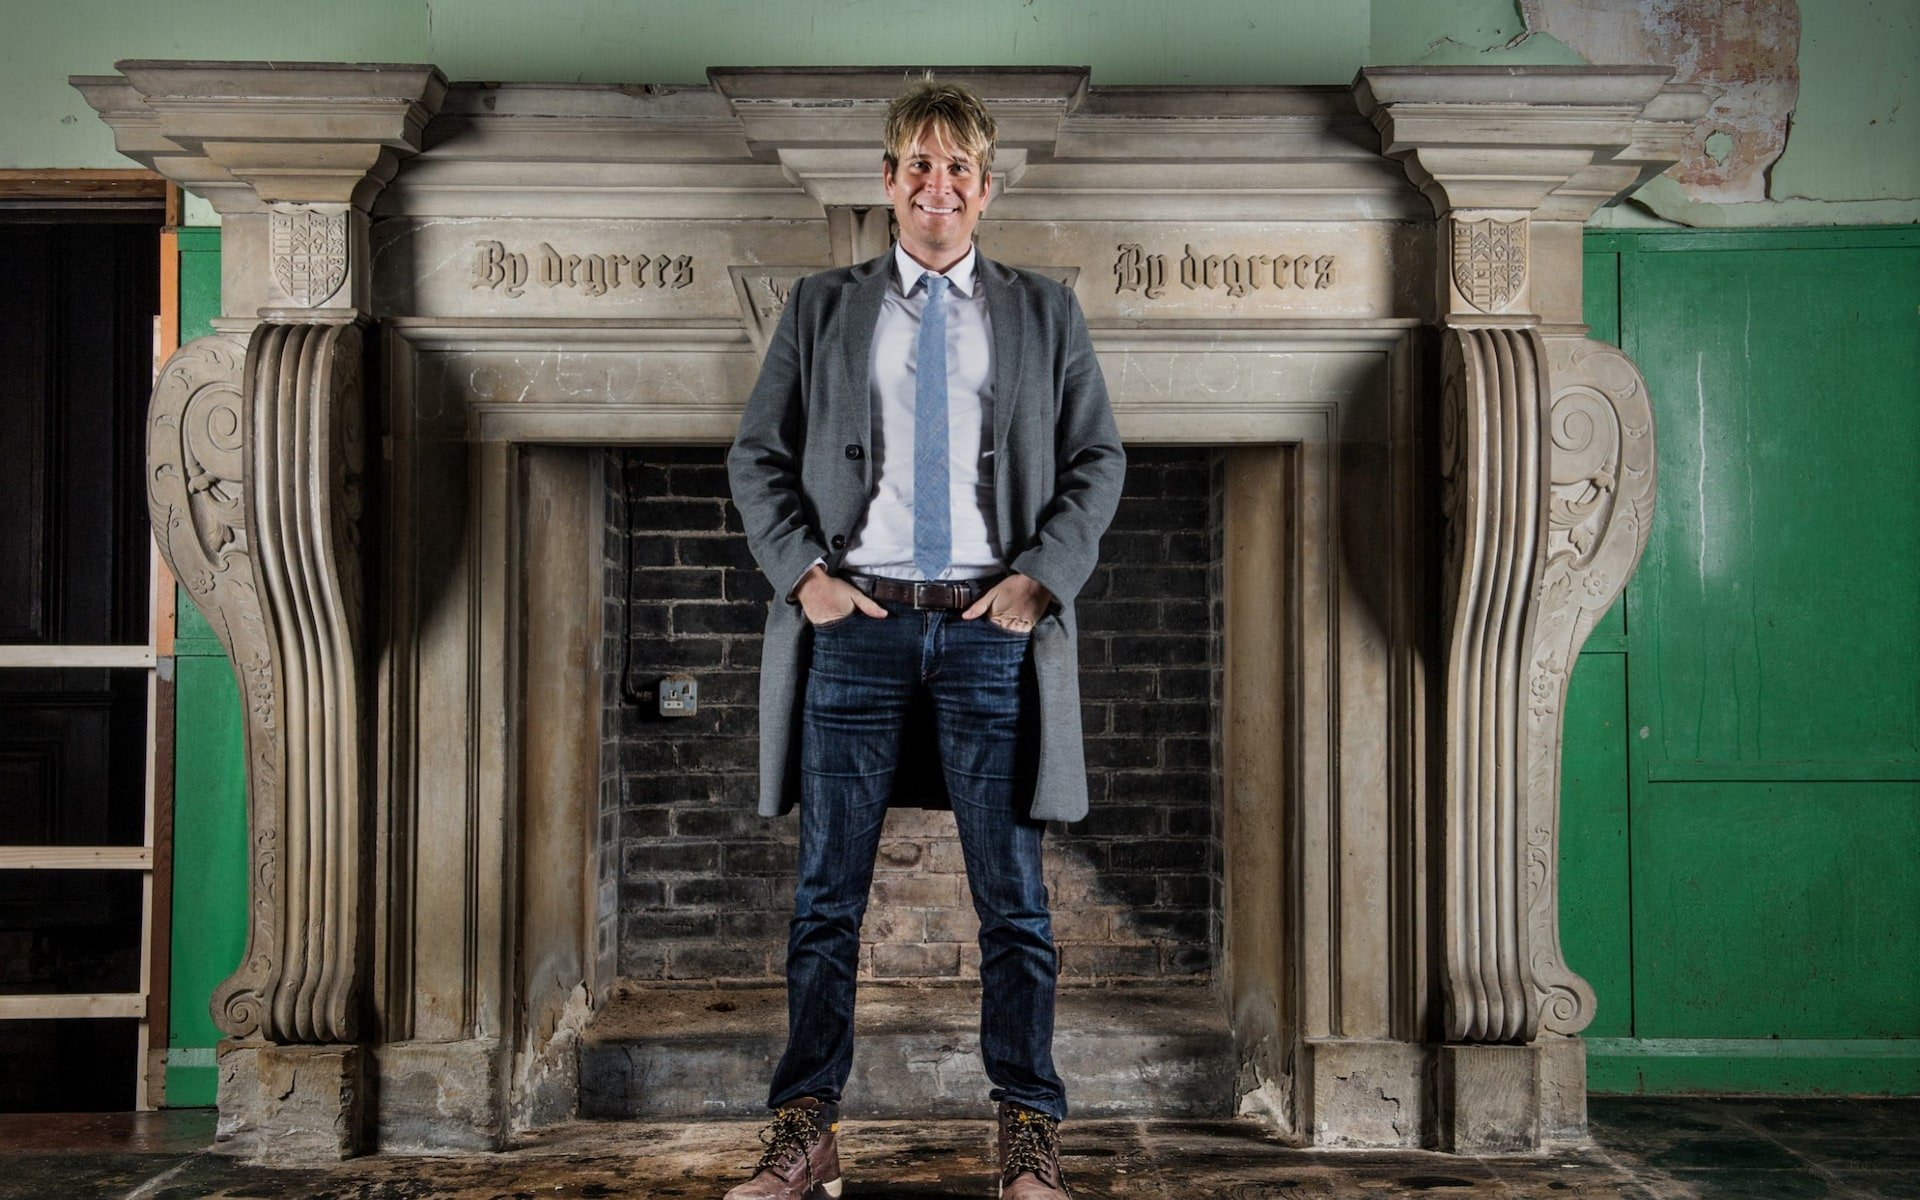 THE TELEGRAPH: Meet Hopwood Depree, the LA actor who has swapped Hollywood for his crumbling ancestral pile in Manchester: Hopwood Hall Rochdale